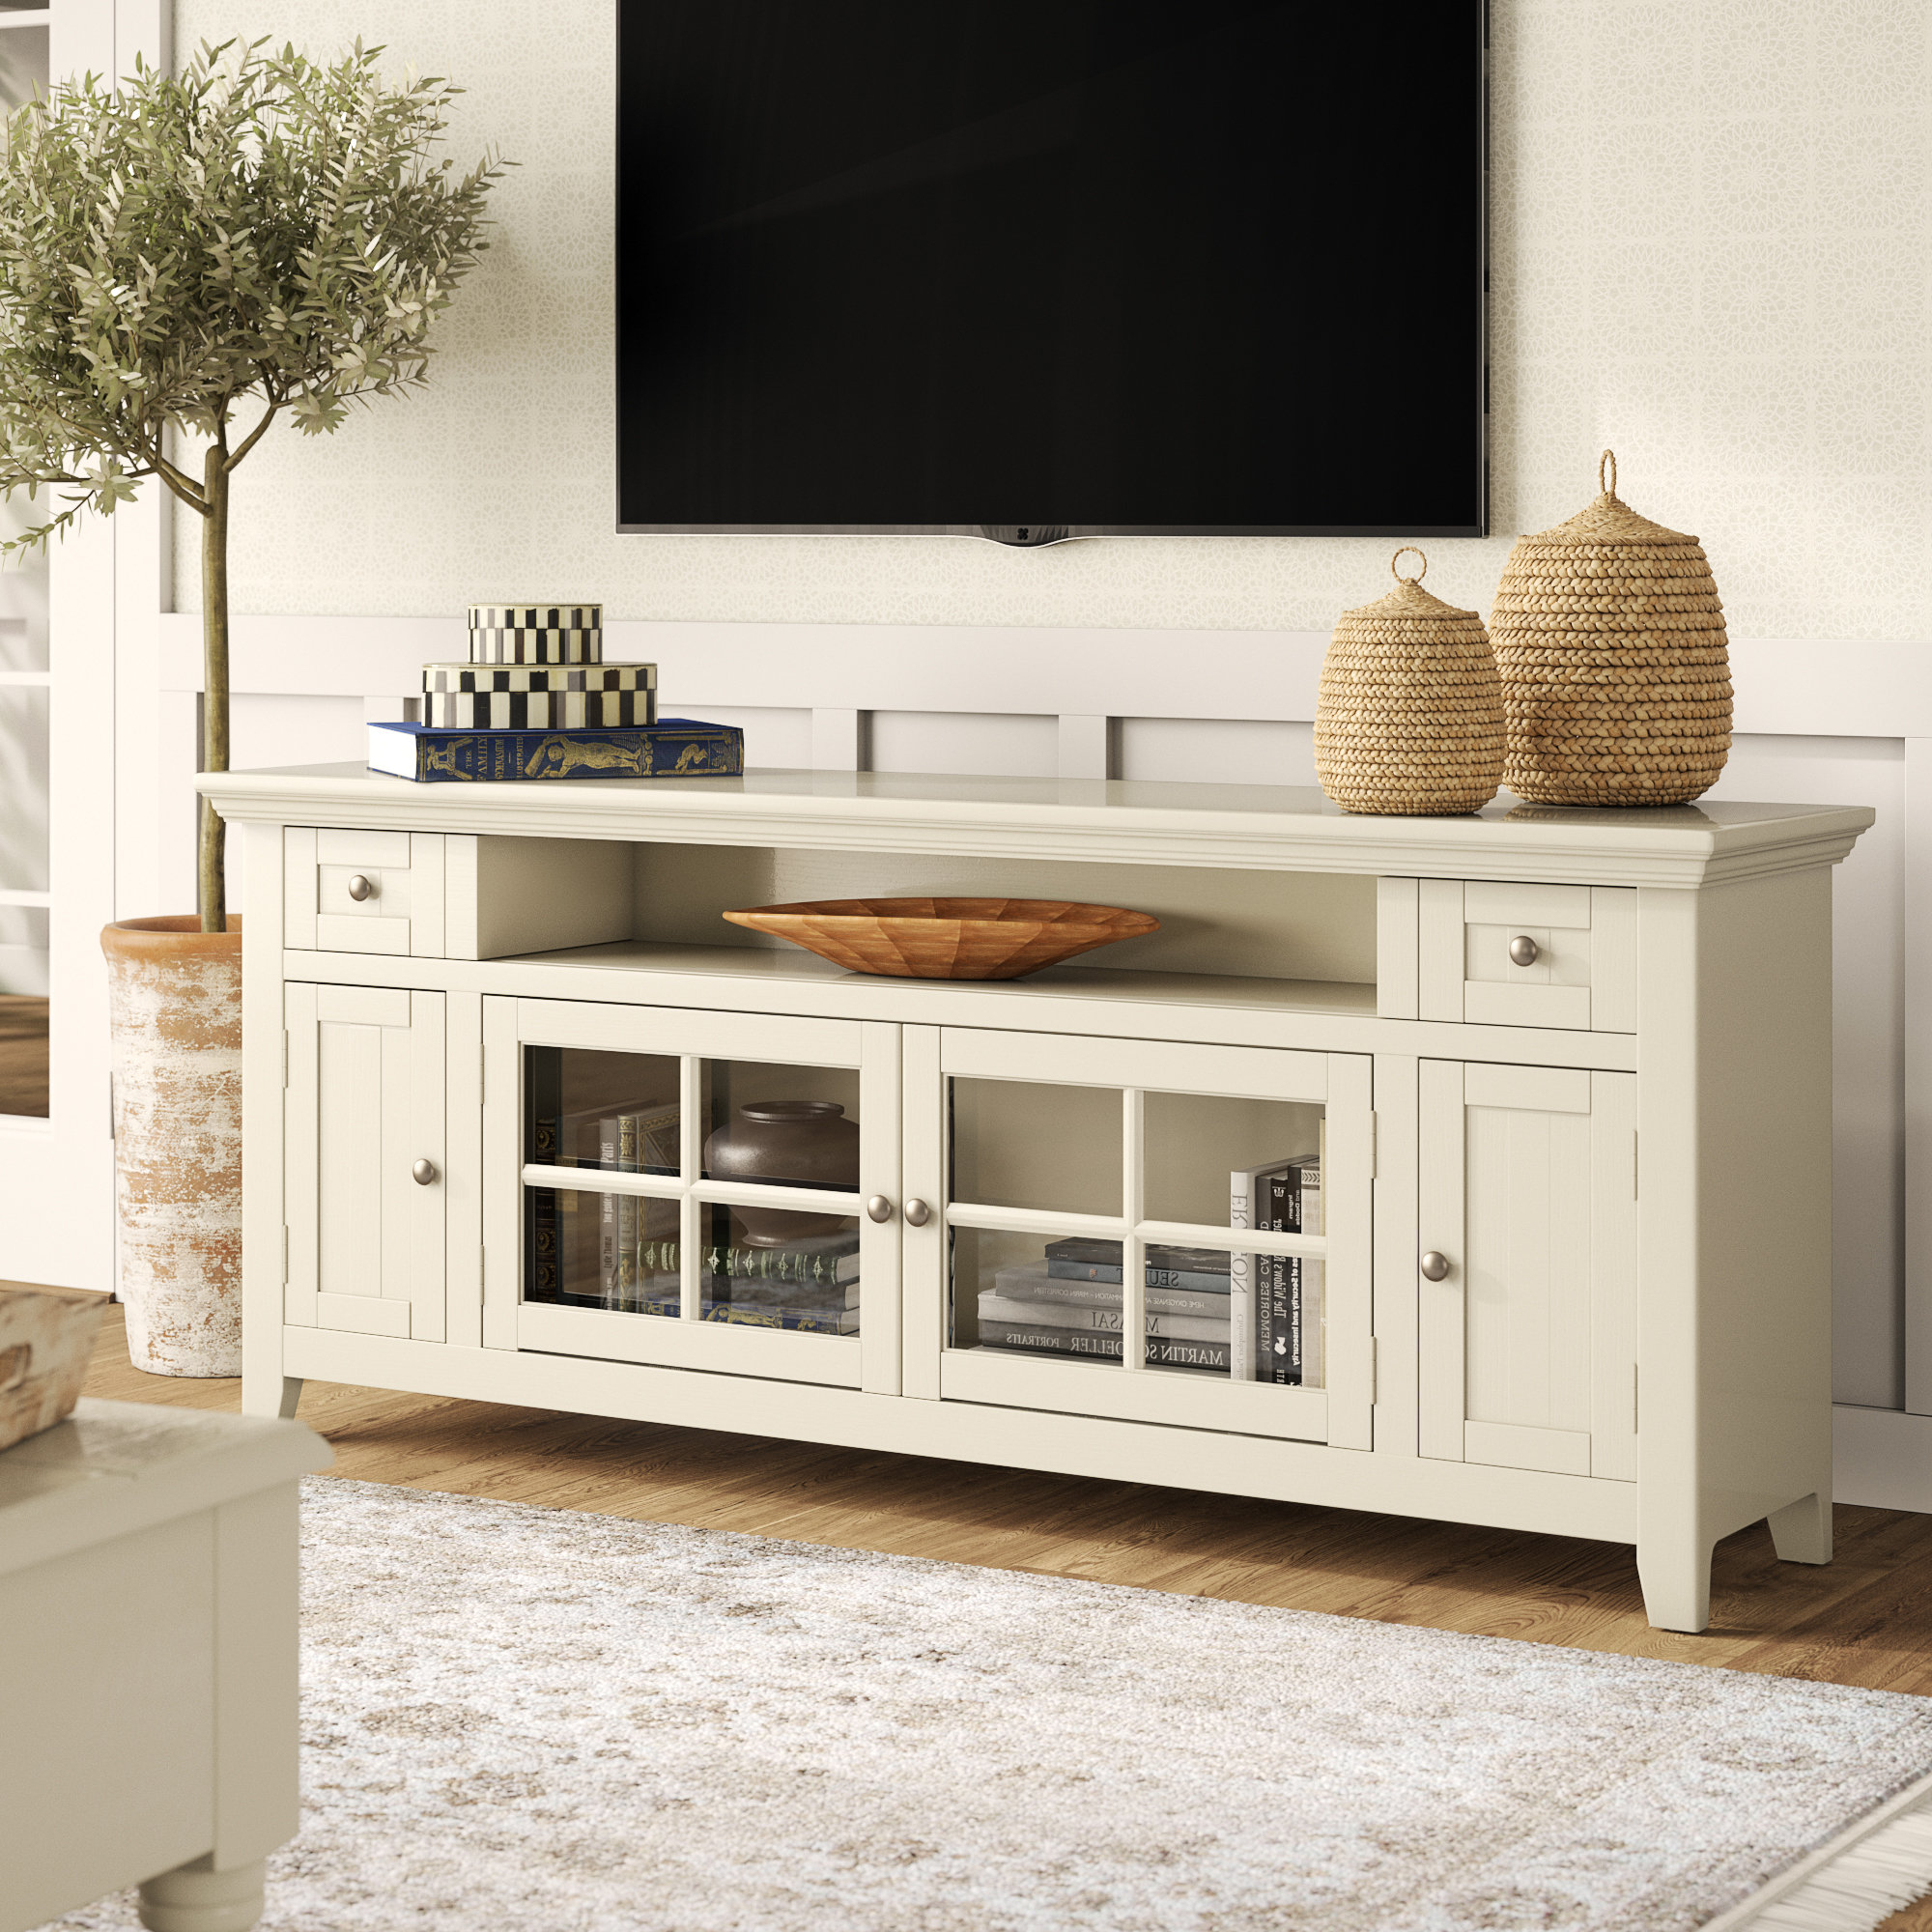 "Calila Tv Stand For Tvs Up To 70"" Pertaining To Colefax Vintage Tv Stands For Tvs Up To 78"" (View 4 of 20)"